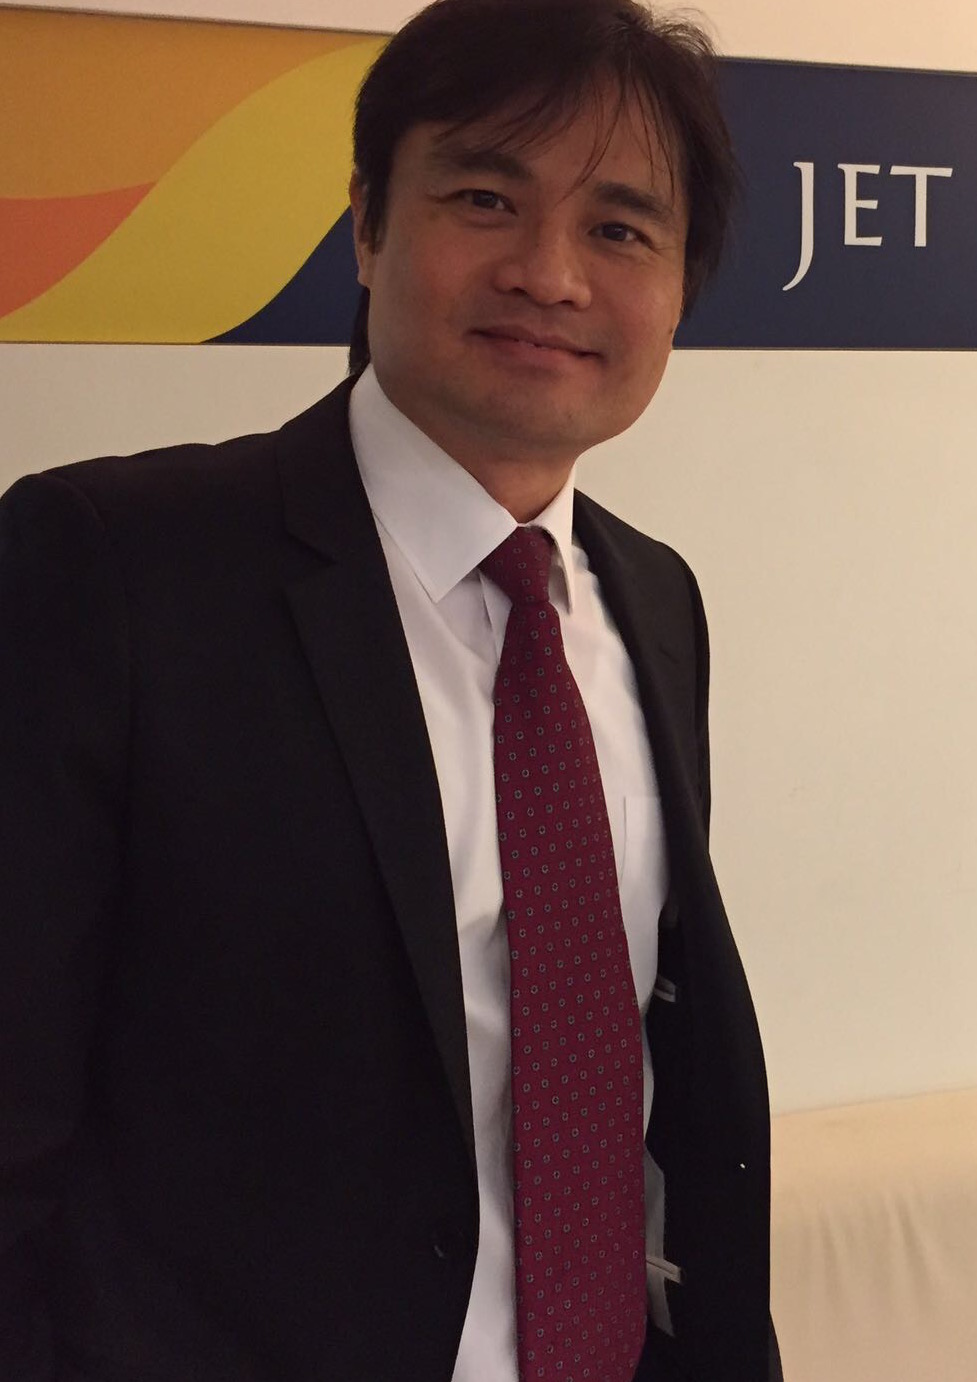 Paul Wu, General Manager, Jet Airways Photo courtesy: Jet Airways